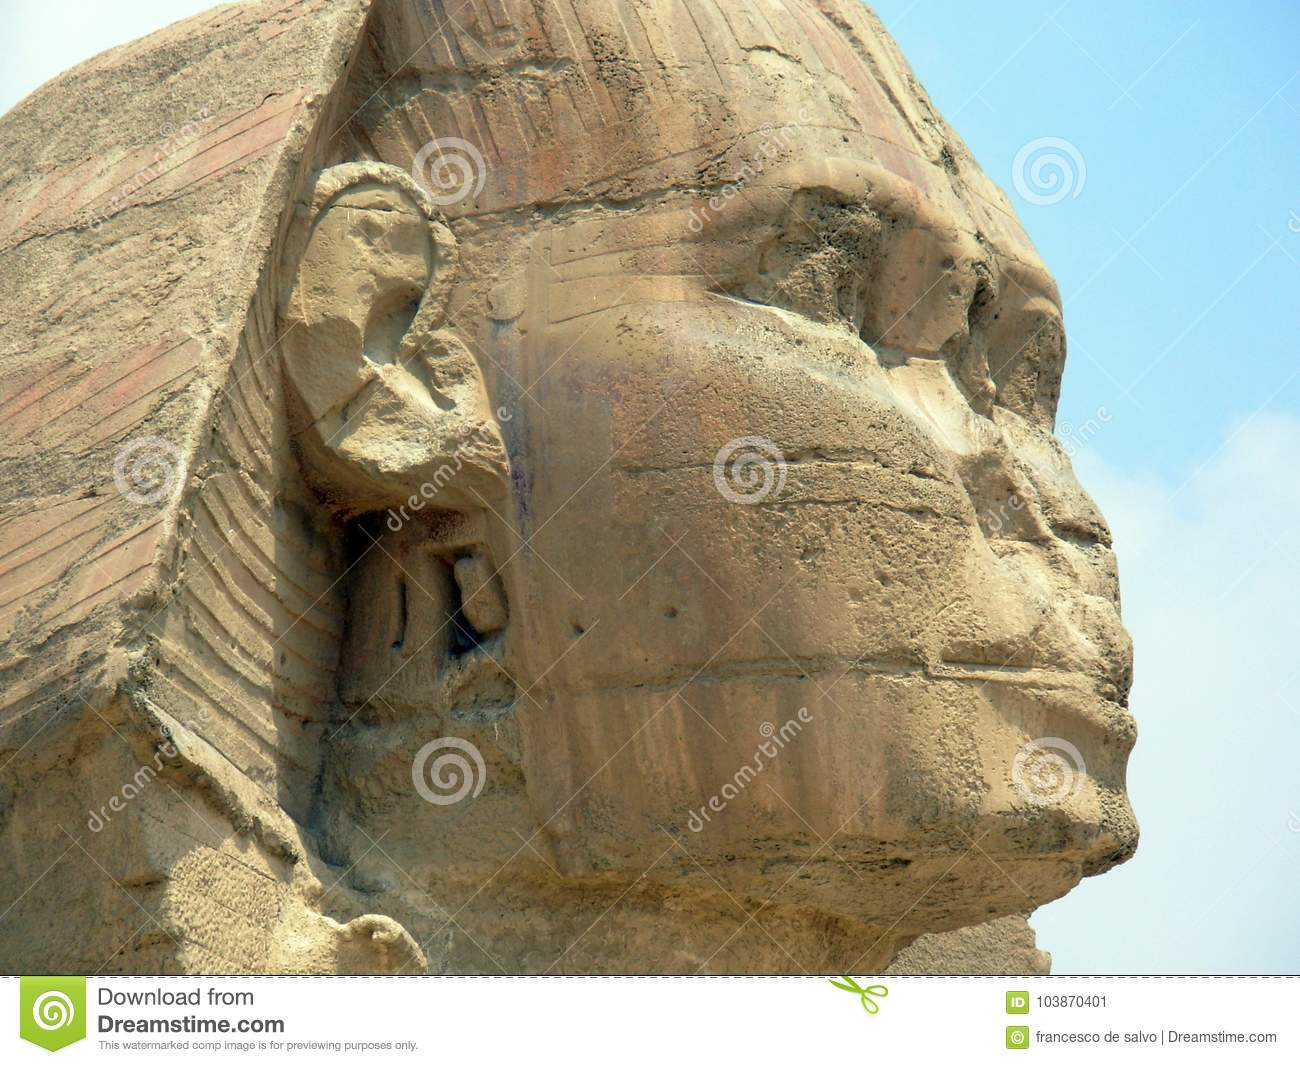 Pyramids of giza cairo egypt stock image image of sculpture